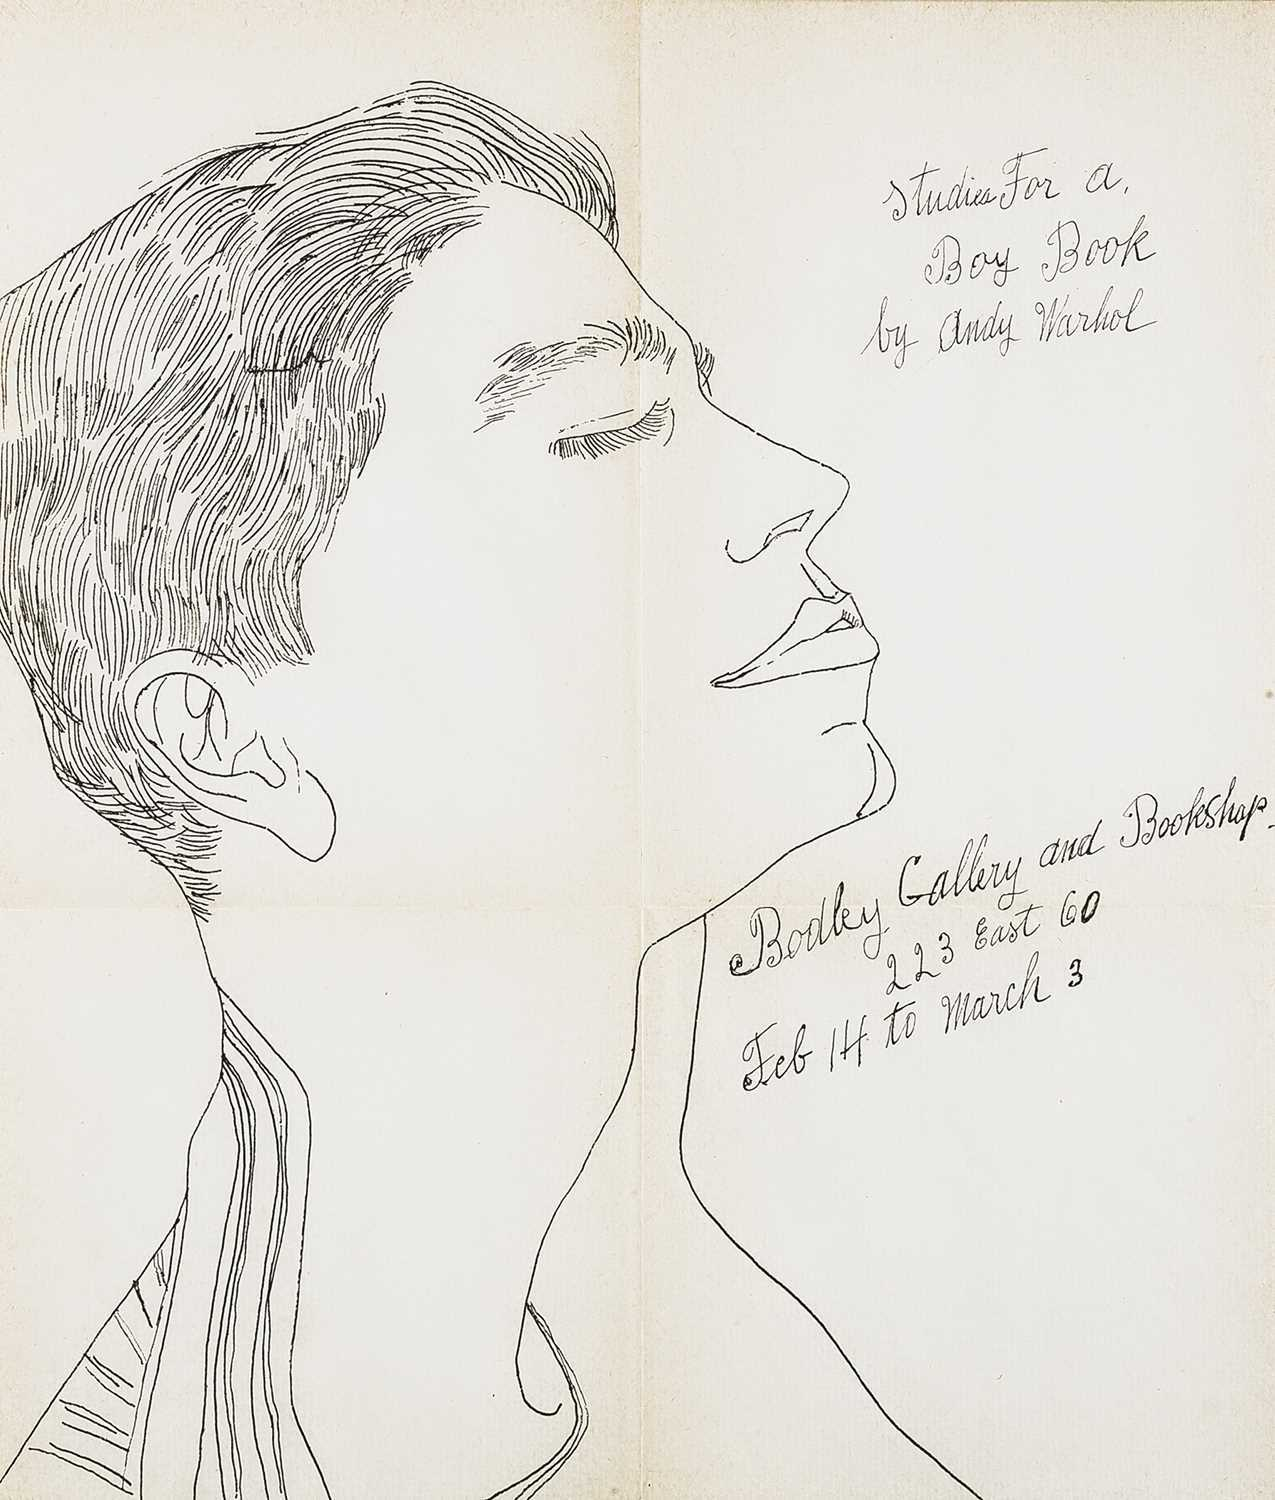 Lot 3 - Andy Warhol (American 1928-1987), 'Studies For A Boy Book (Bodley Gallery Announcement)', c.1959